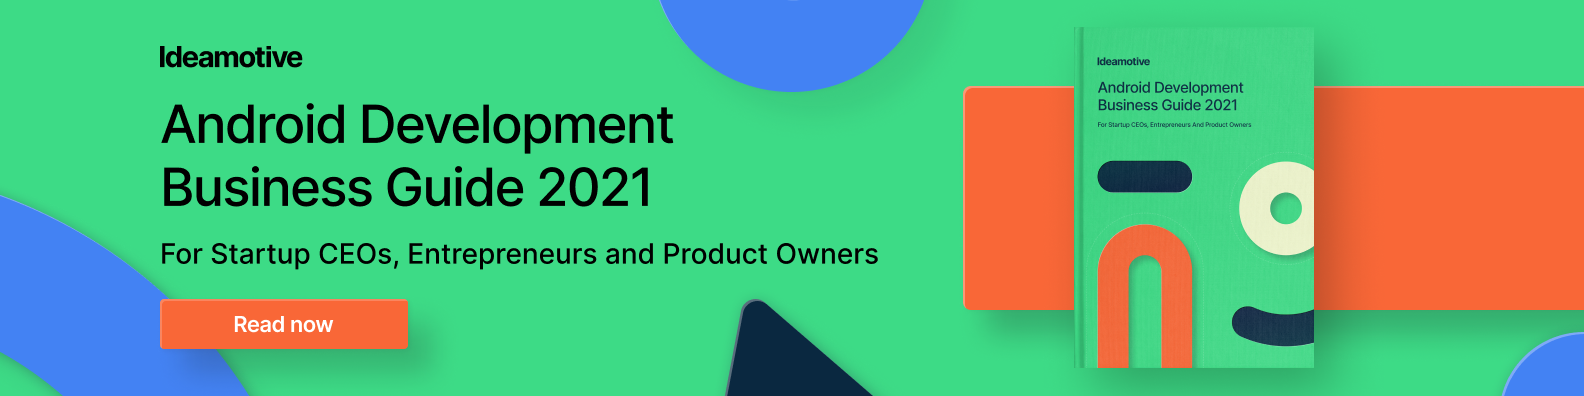 Android Development Business Guide